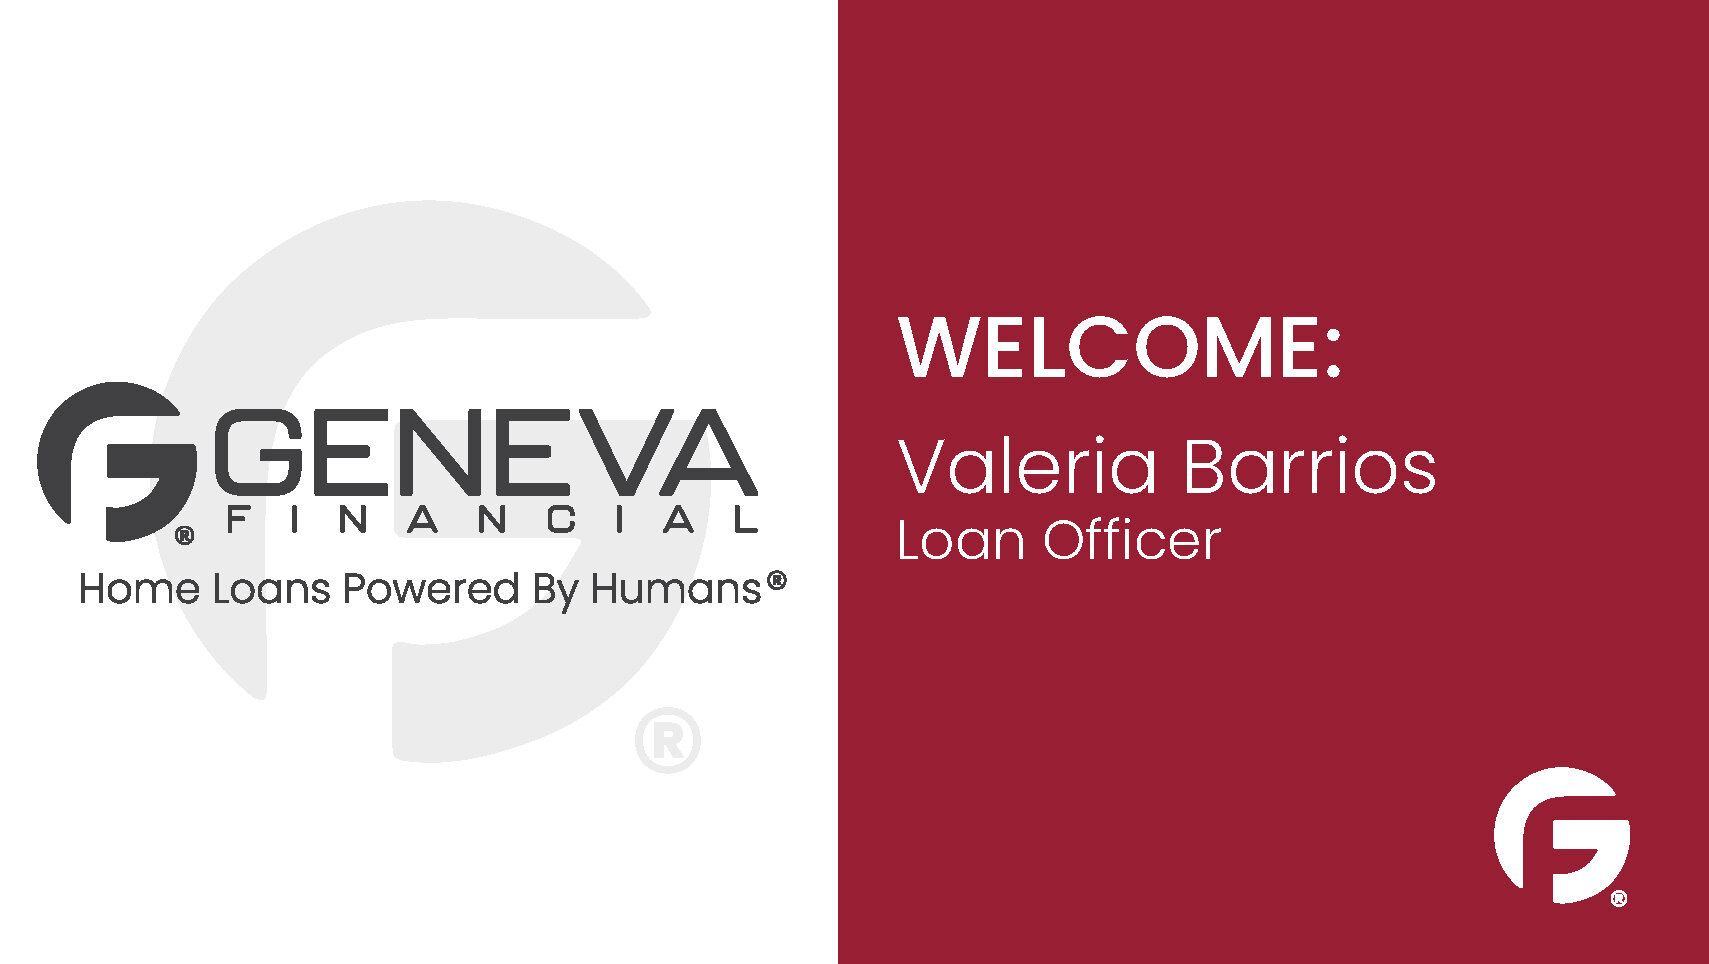 Valeria Barrios, Loan Officer, Texas